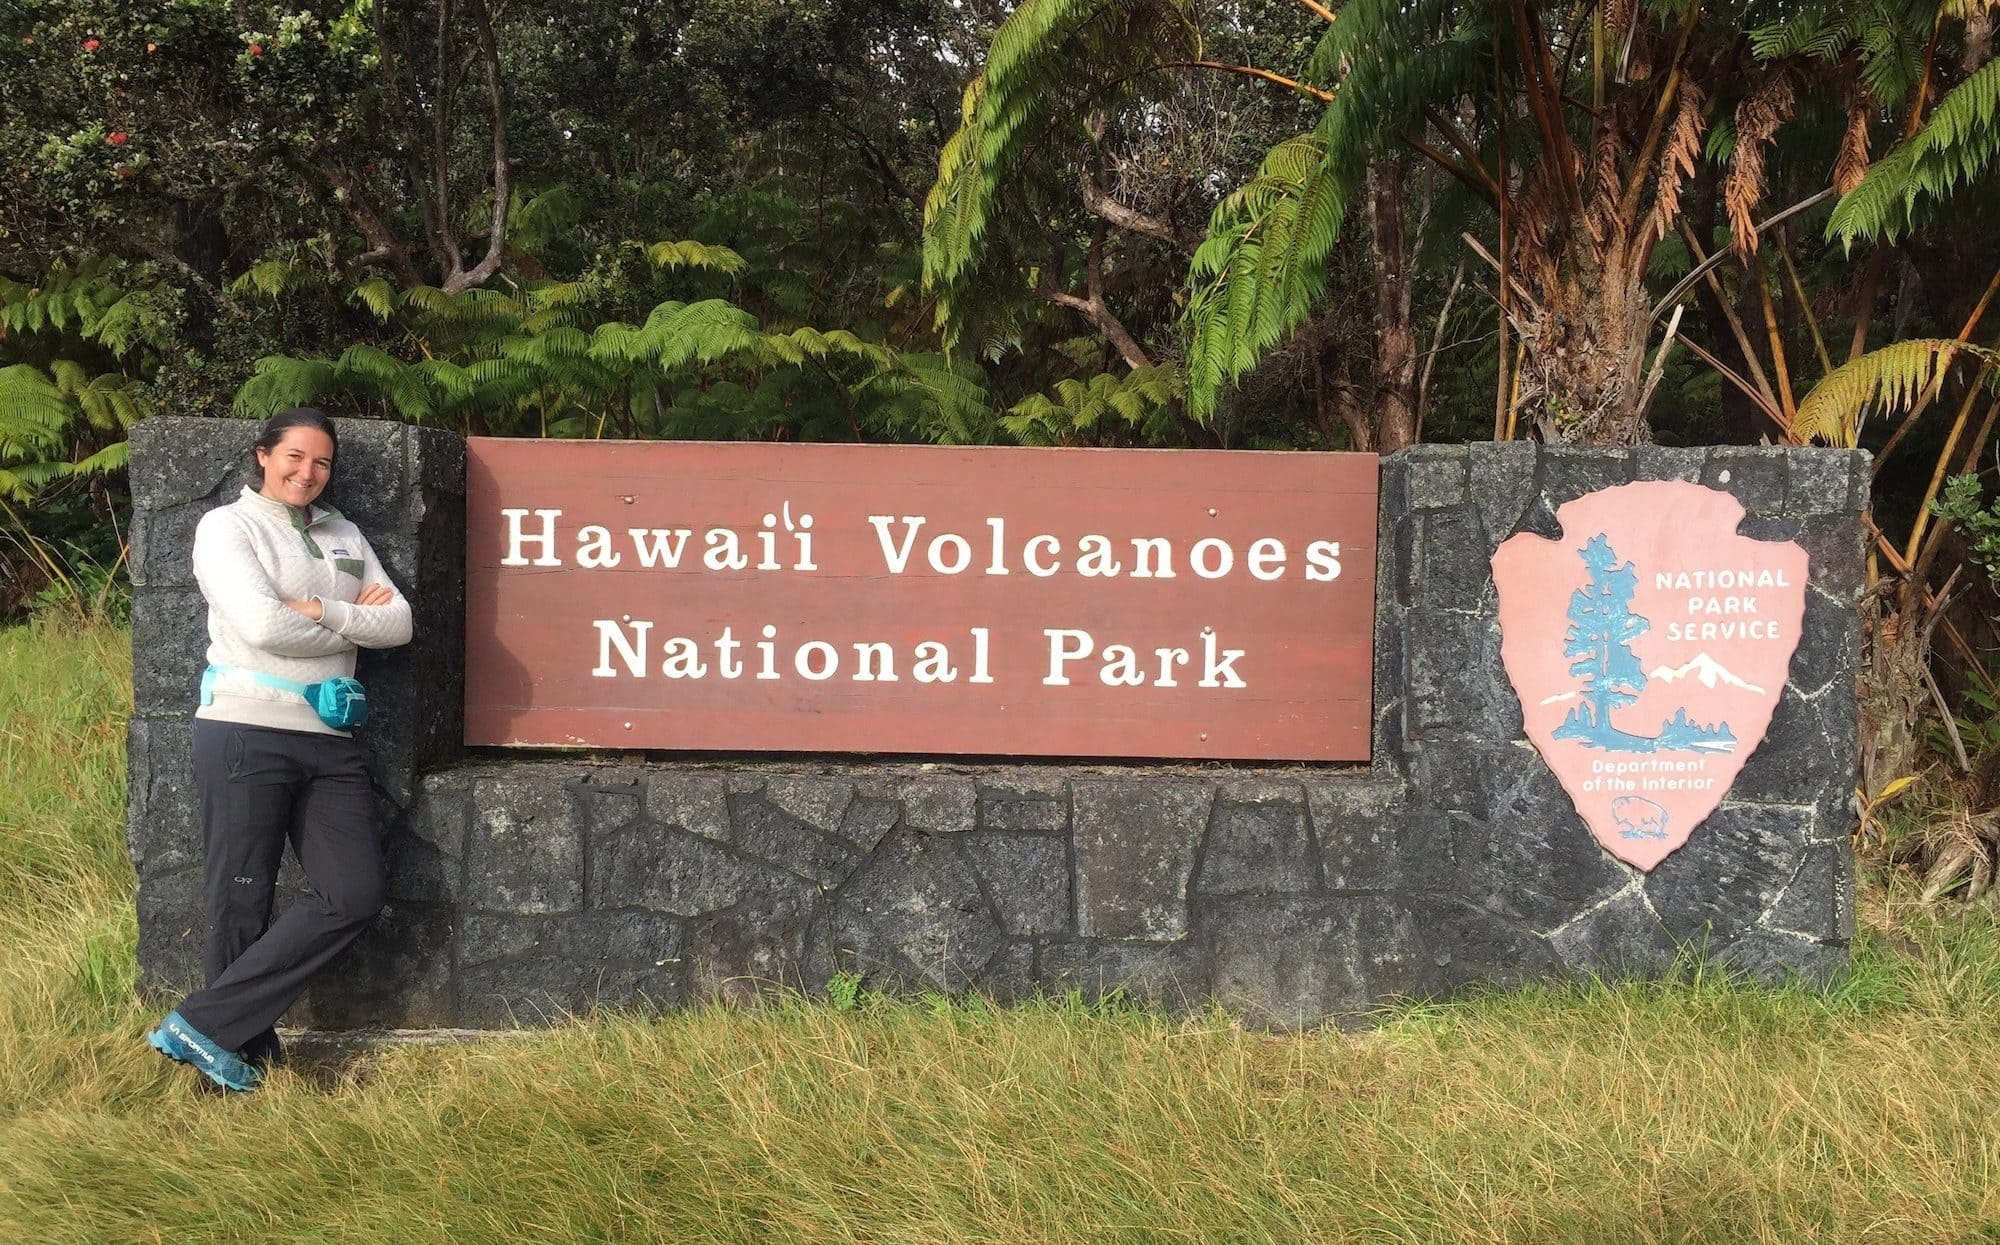 Hawaii's Volcanoes National Park on the Big Island is one of the most unique National Parks in America. Use our Hawaii Volcanoes National Park guide from my recent trip to discover the best things to do, trails, and where to see the lava flow + tips of where to eat, stay, and camp.